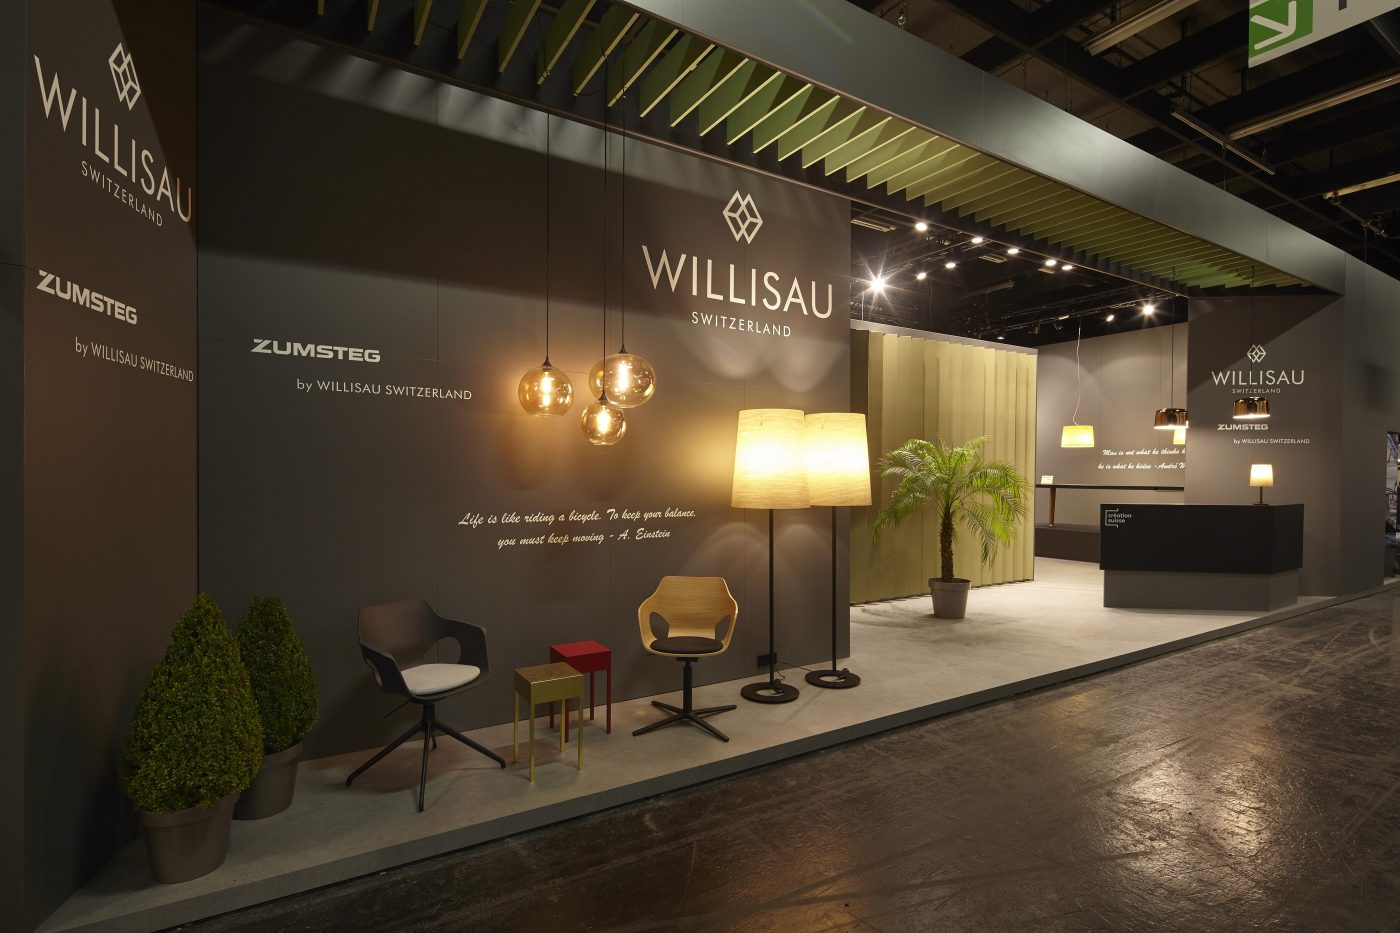 Willisau Messestand Immcologne2019 2